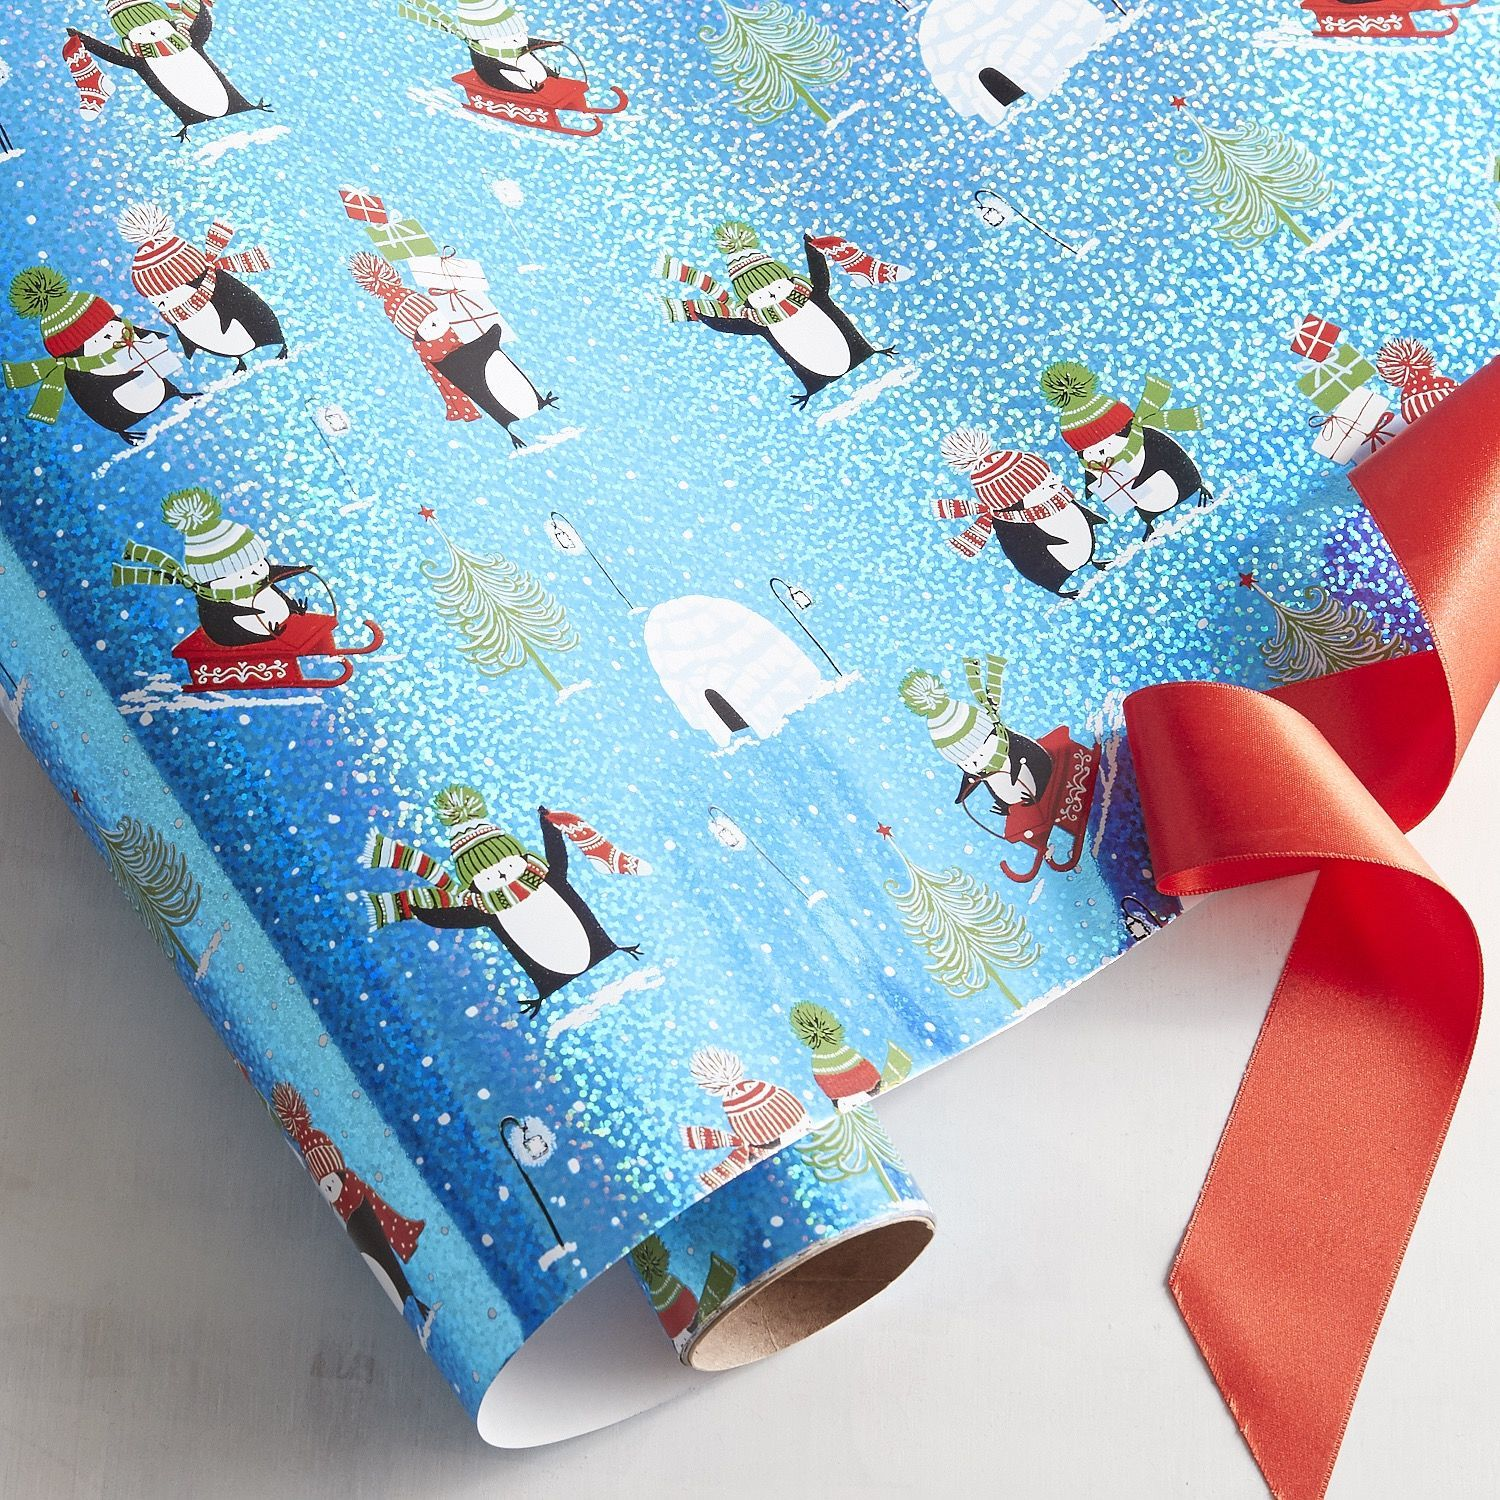 Penguin Holographic Gift Wrap Silver | Products | Pinterest ...